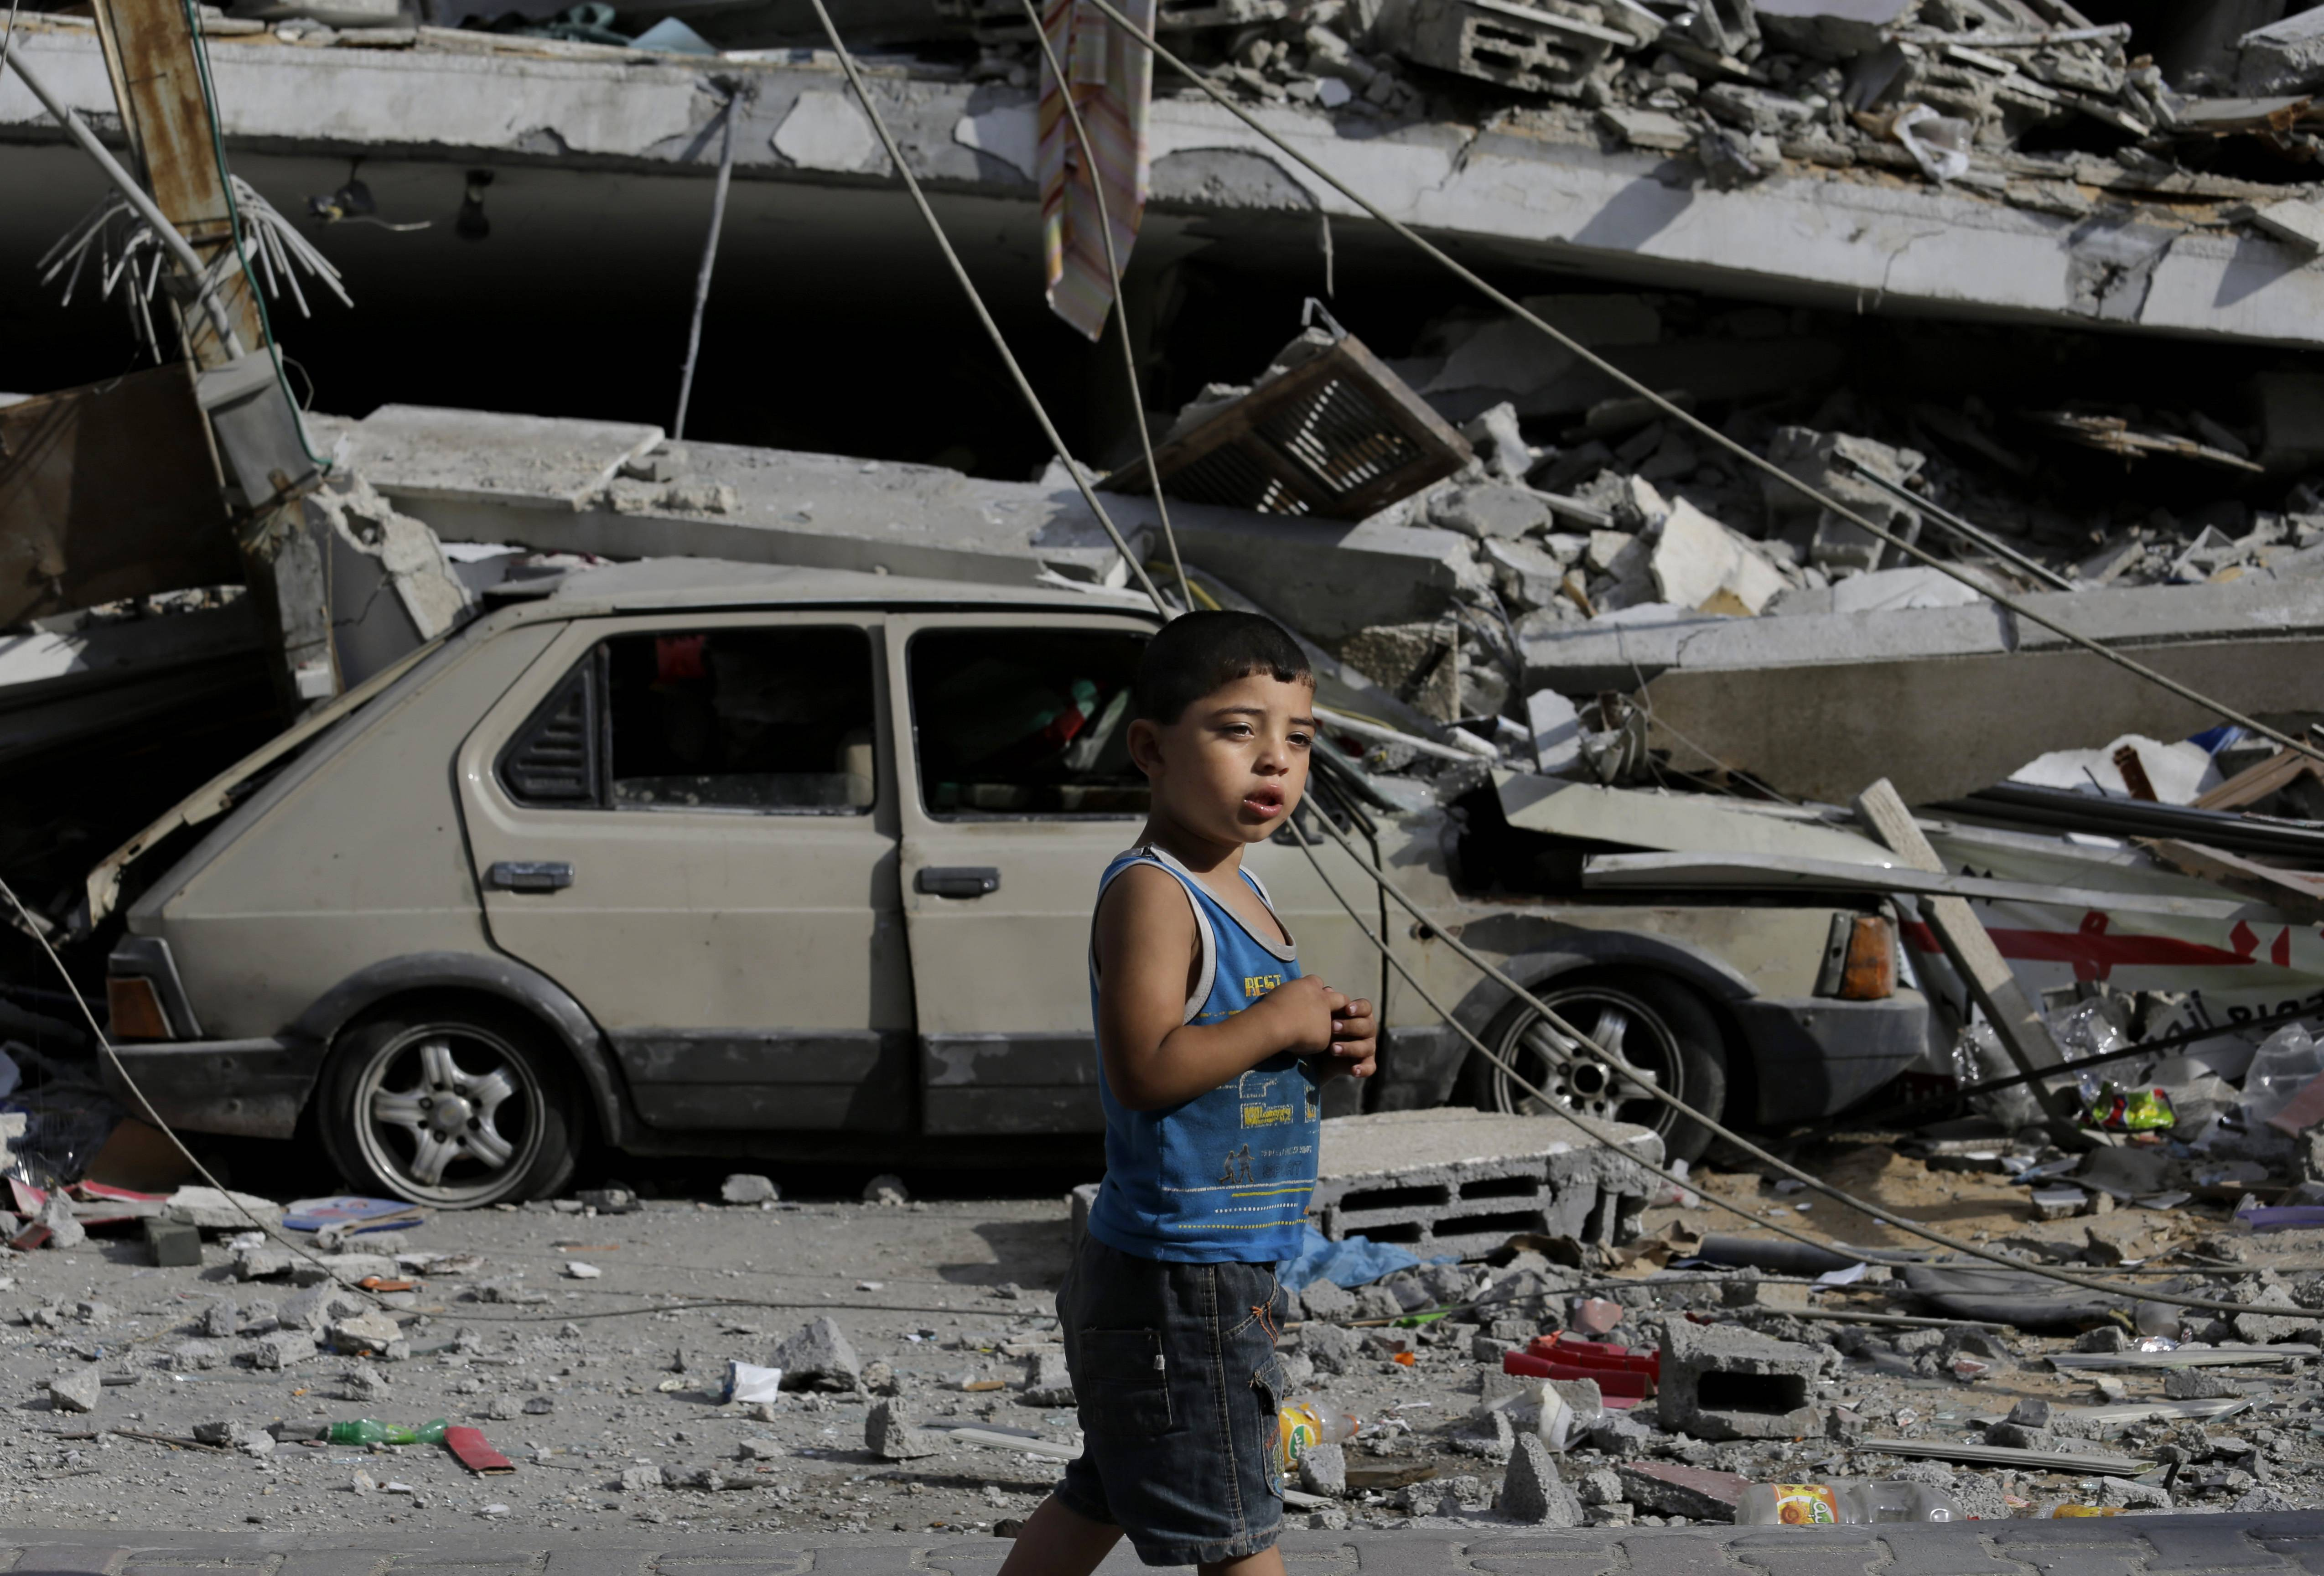 Palestinian Abdel Aziz Jendiyah, 4, walks past a six-story building, destroyed by an Israeli strike earlier during the war, adjacent to his family house, in the Sabra neighborhood of Gaza City, northern Gaza Strip, Thursday. The Jendiyah family building houses 21 members of the extended family, and now with several rooms destroyed, they try to go about their lives, without electricity and without running water for several hours a day.